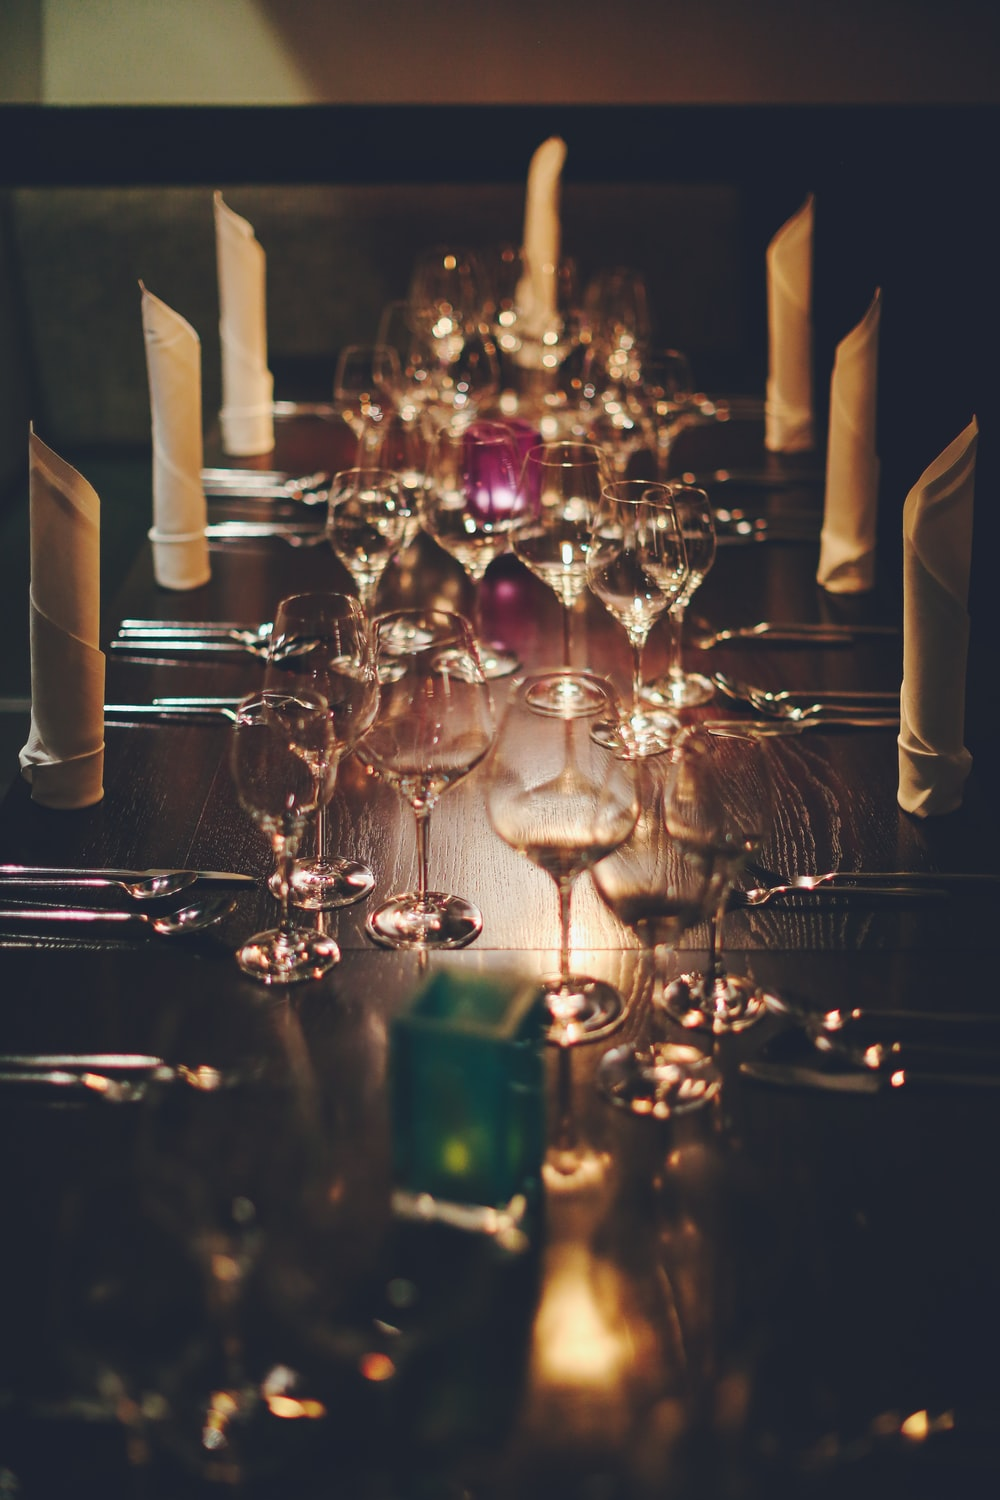 wine glasses on top of table